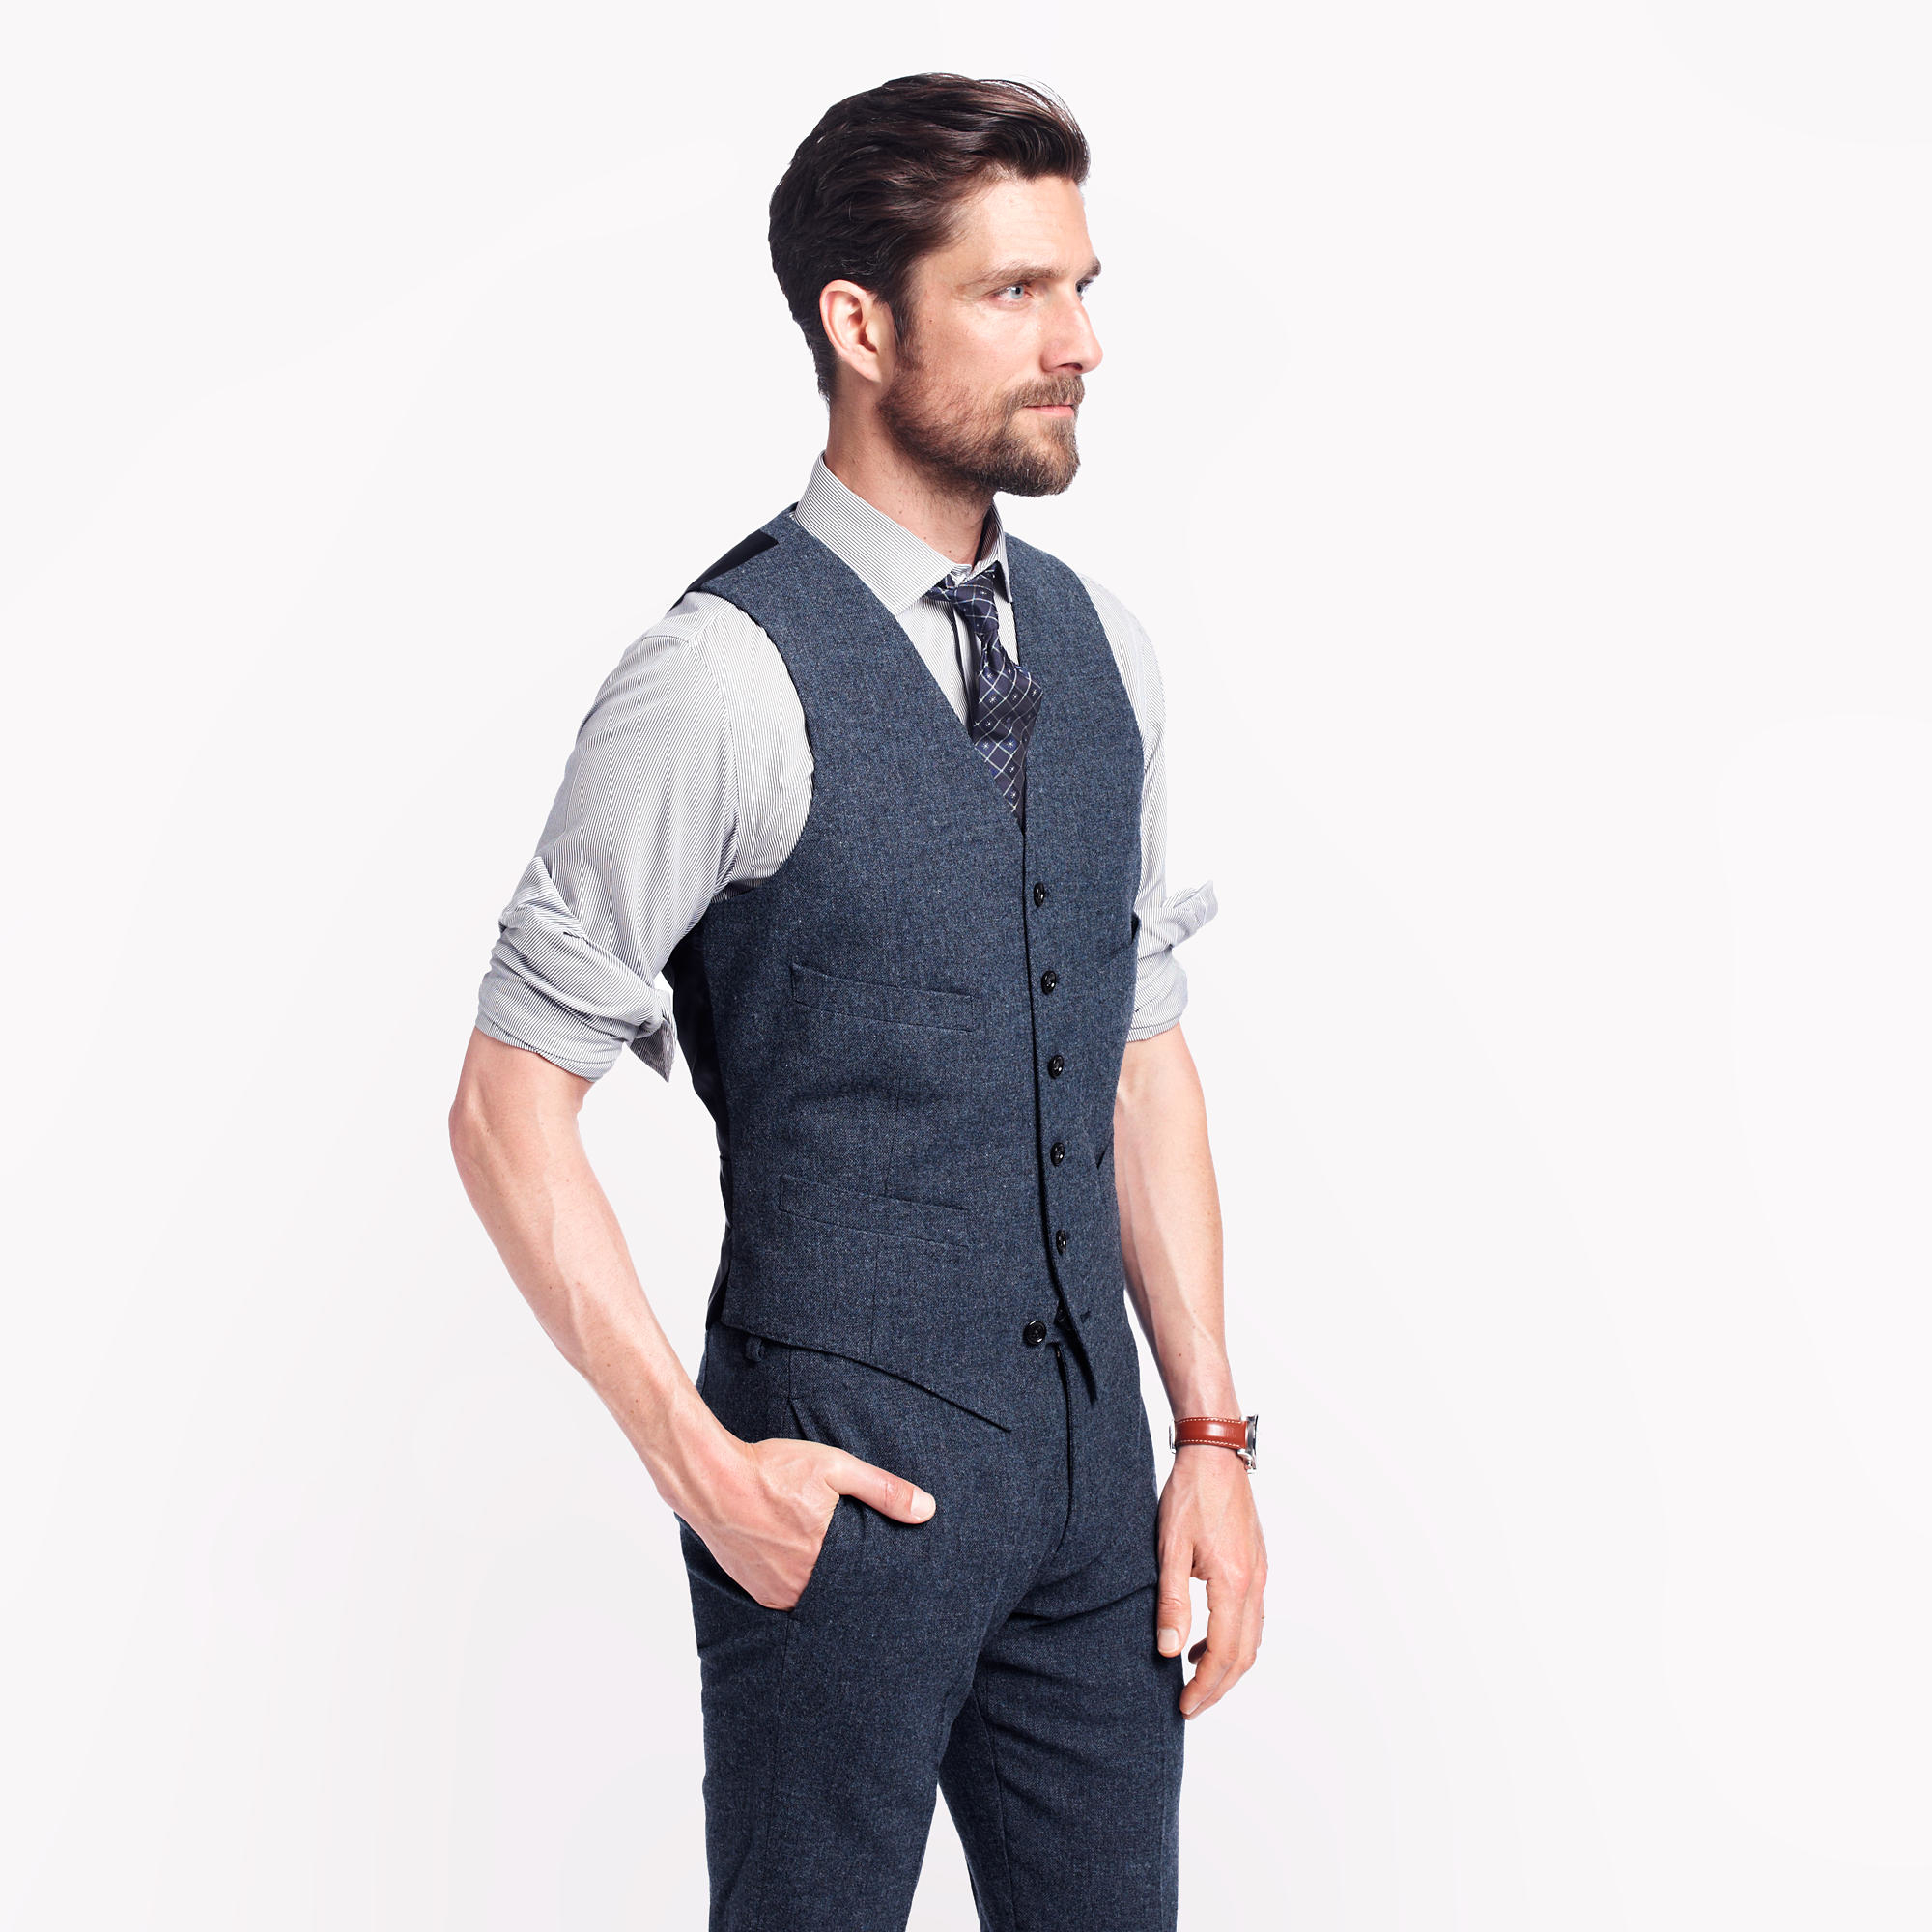 Then look to suit separates for a vest worthy of the occasion. Experiment with fabrics like velvet for a fresh update. Finish your look with your favorite pair of trousers, button-up shirt and dress shoe.